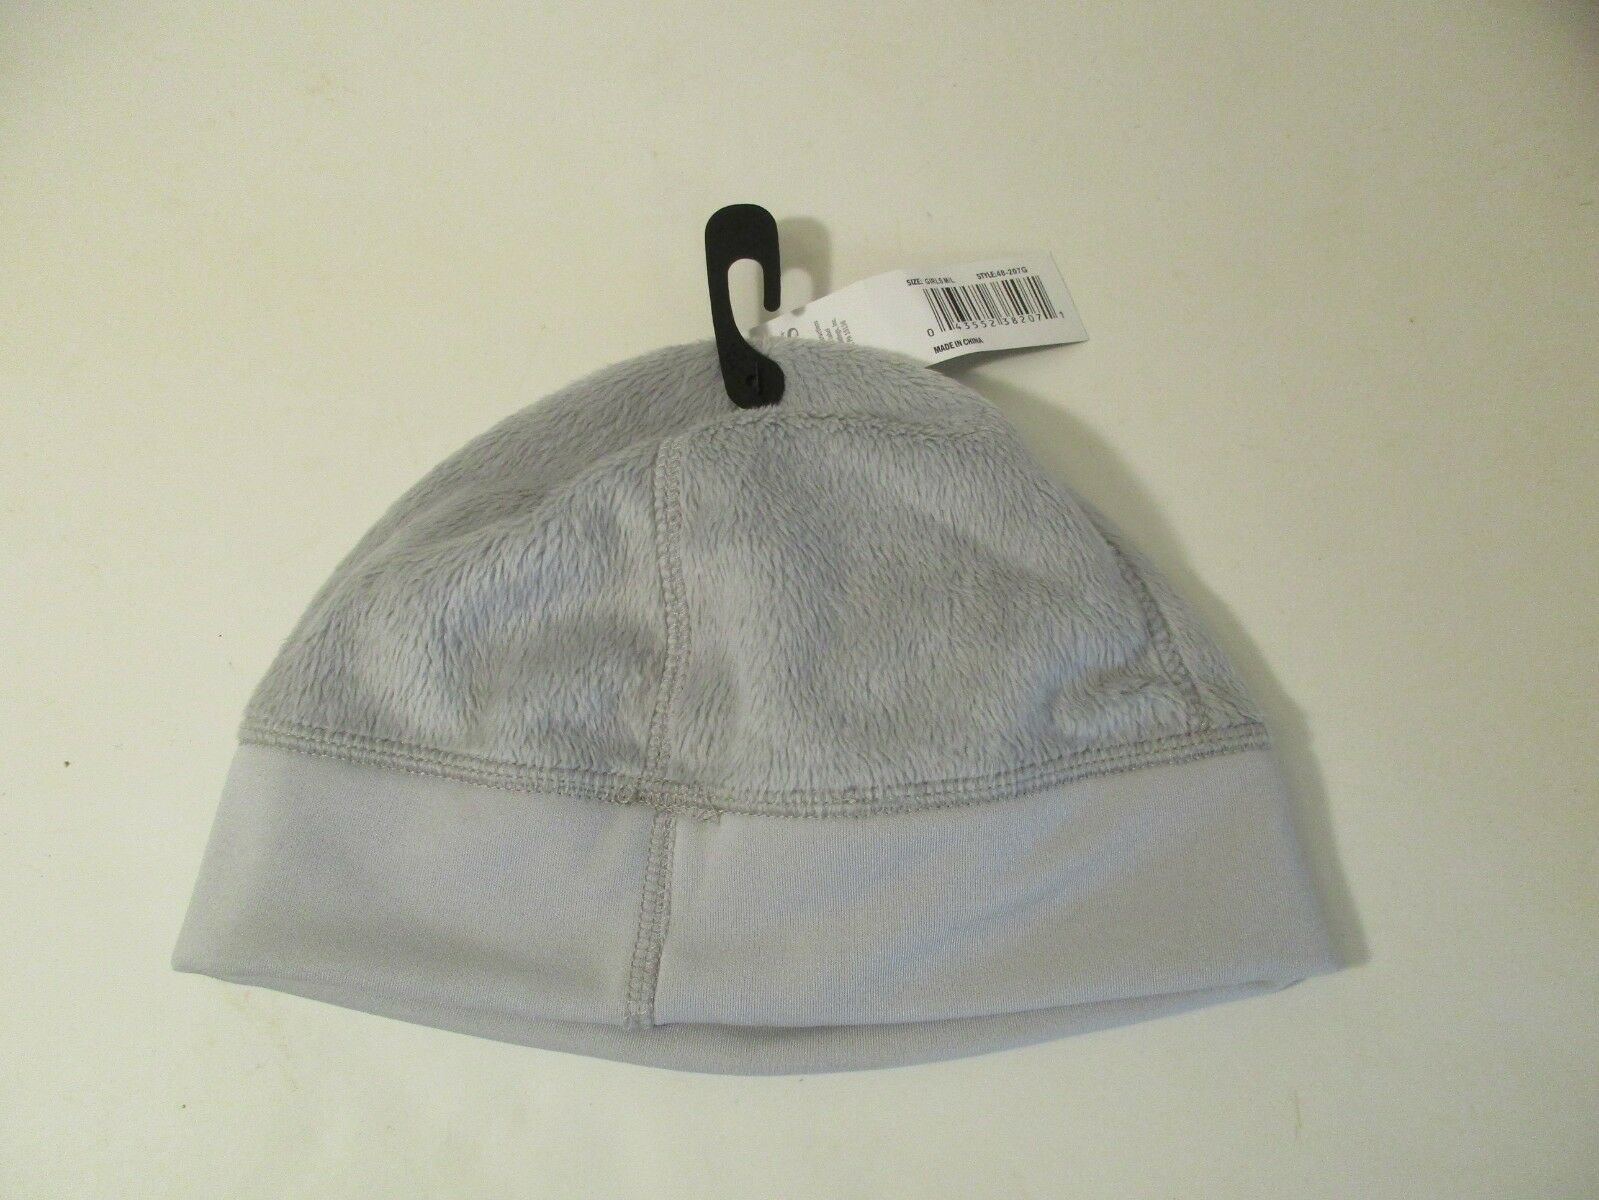 8b983a4f18d Women s Igloos One Size M Gray Fleece Fall Winter Beanie Hat for sale  online